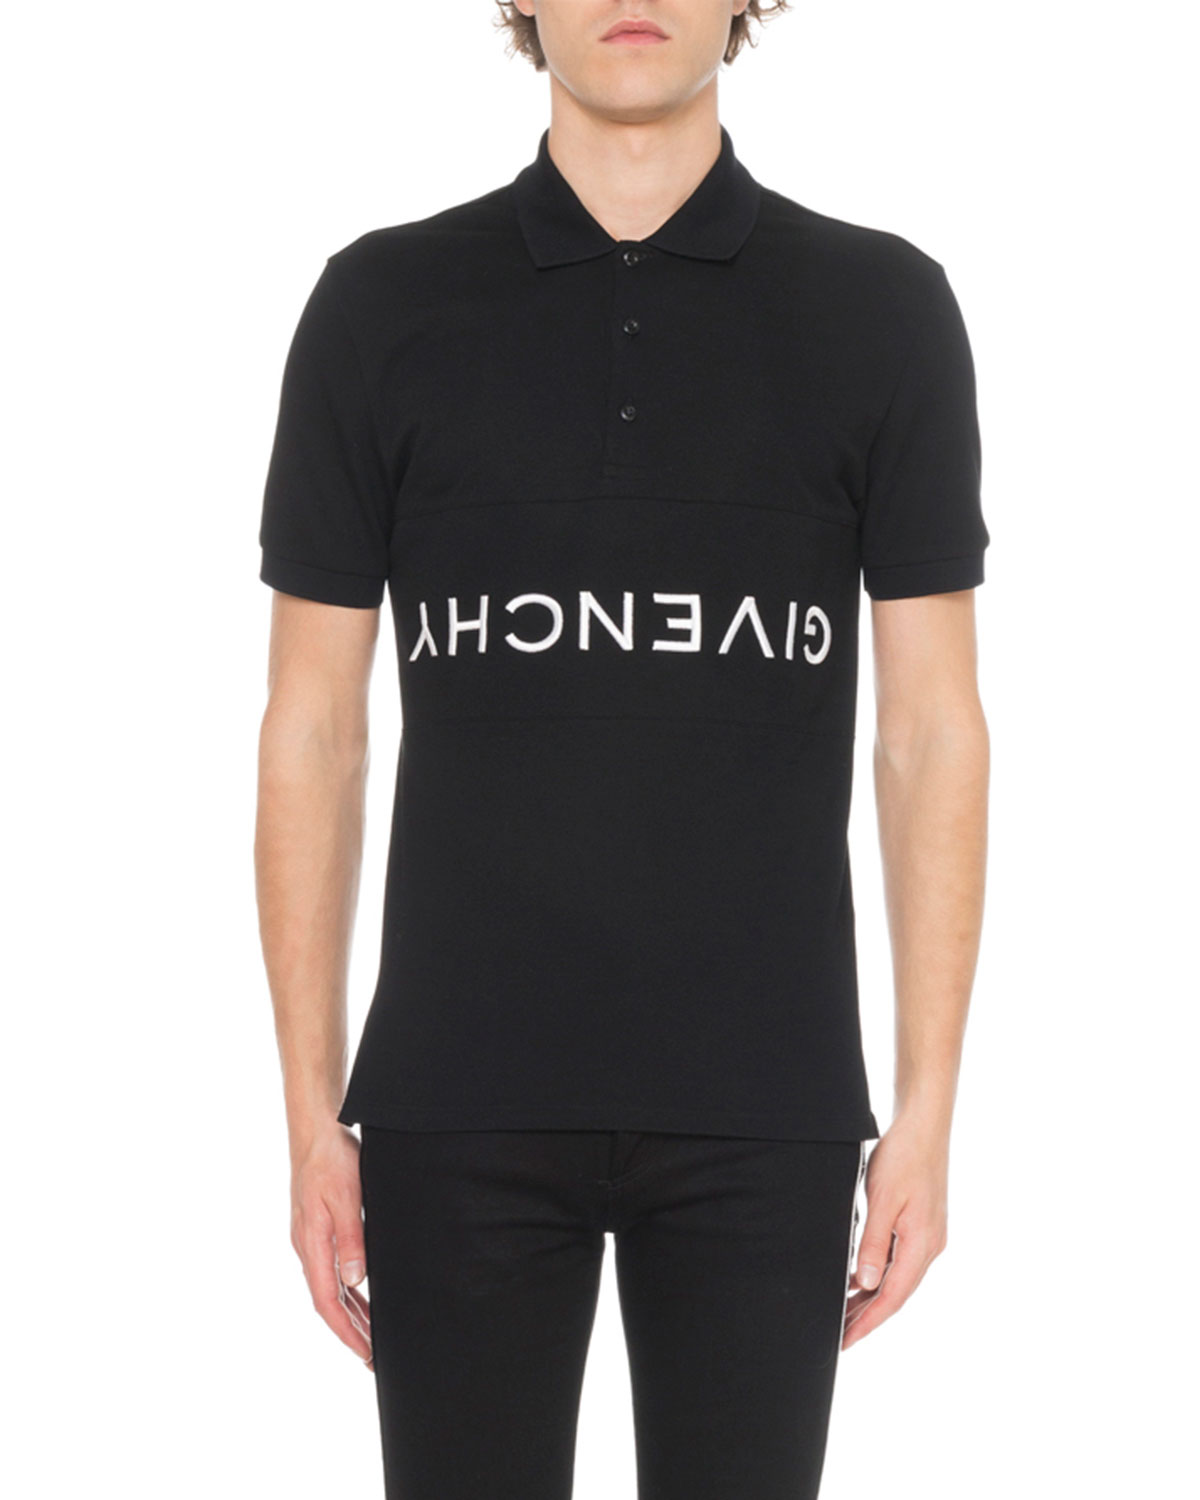 Givenchy Mens Slim Fit Polo Shirt Neiman Marcus